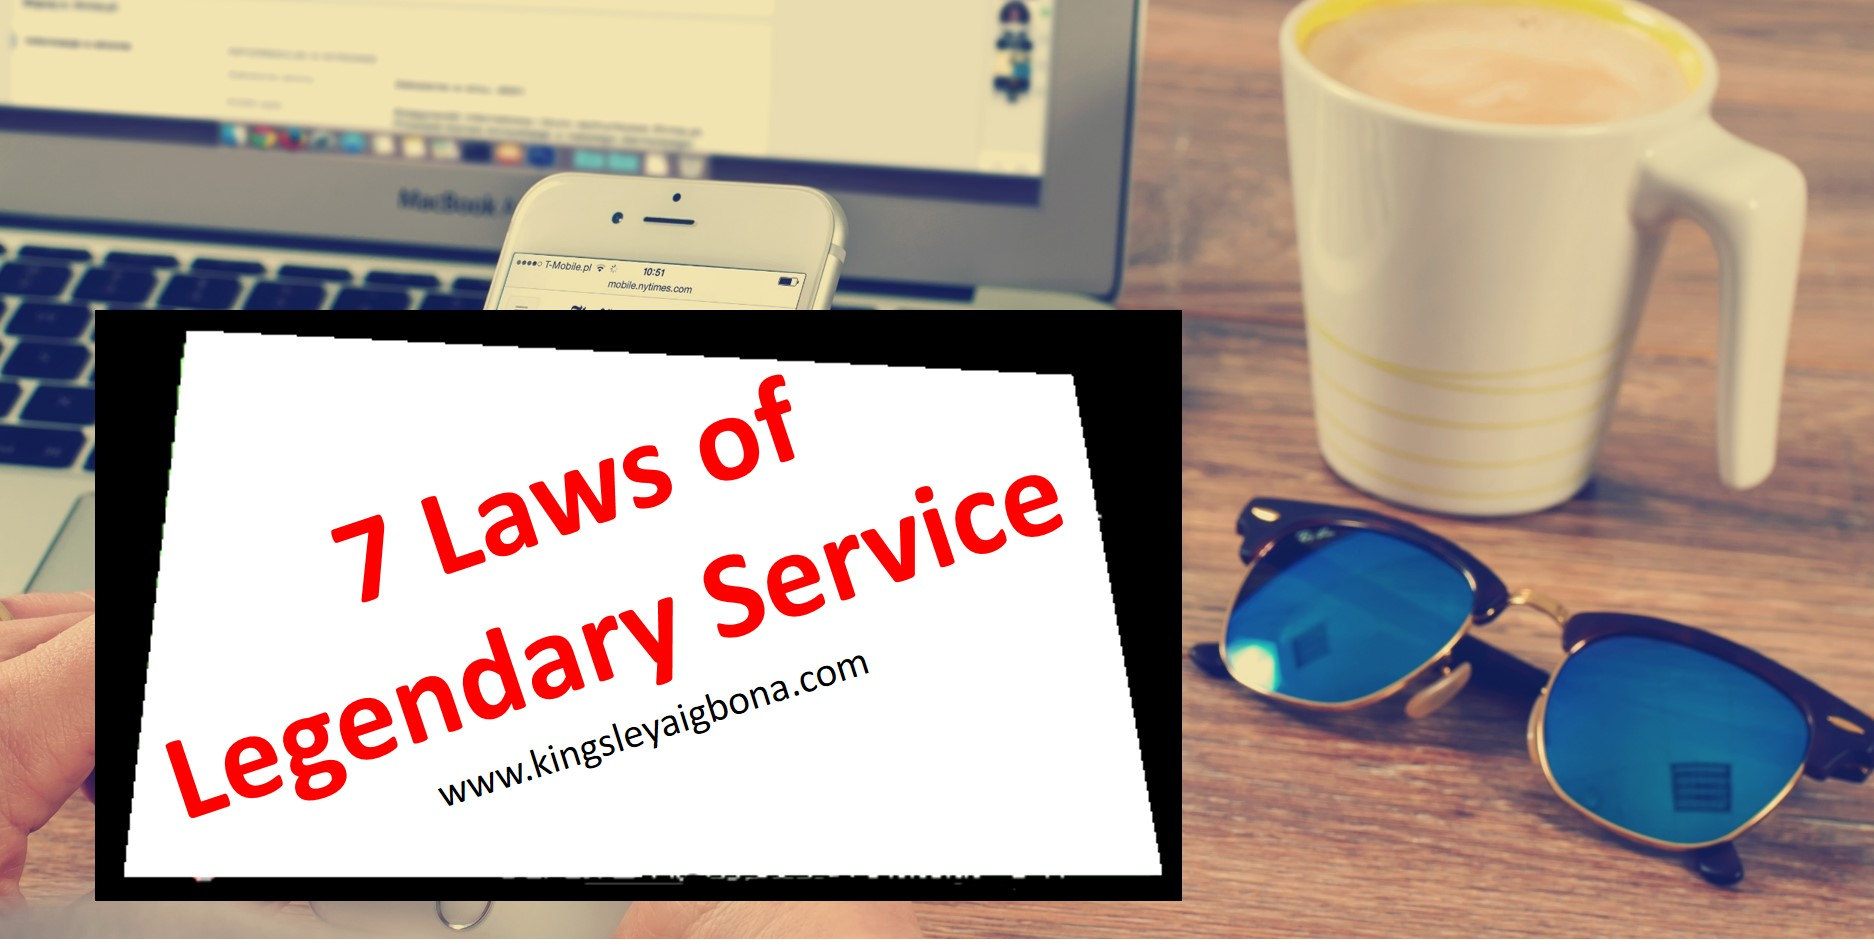 7 Laws of Legendary Service